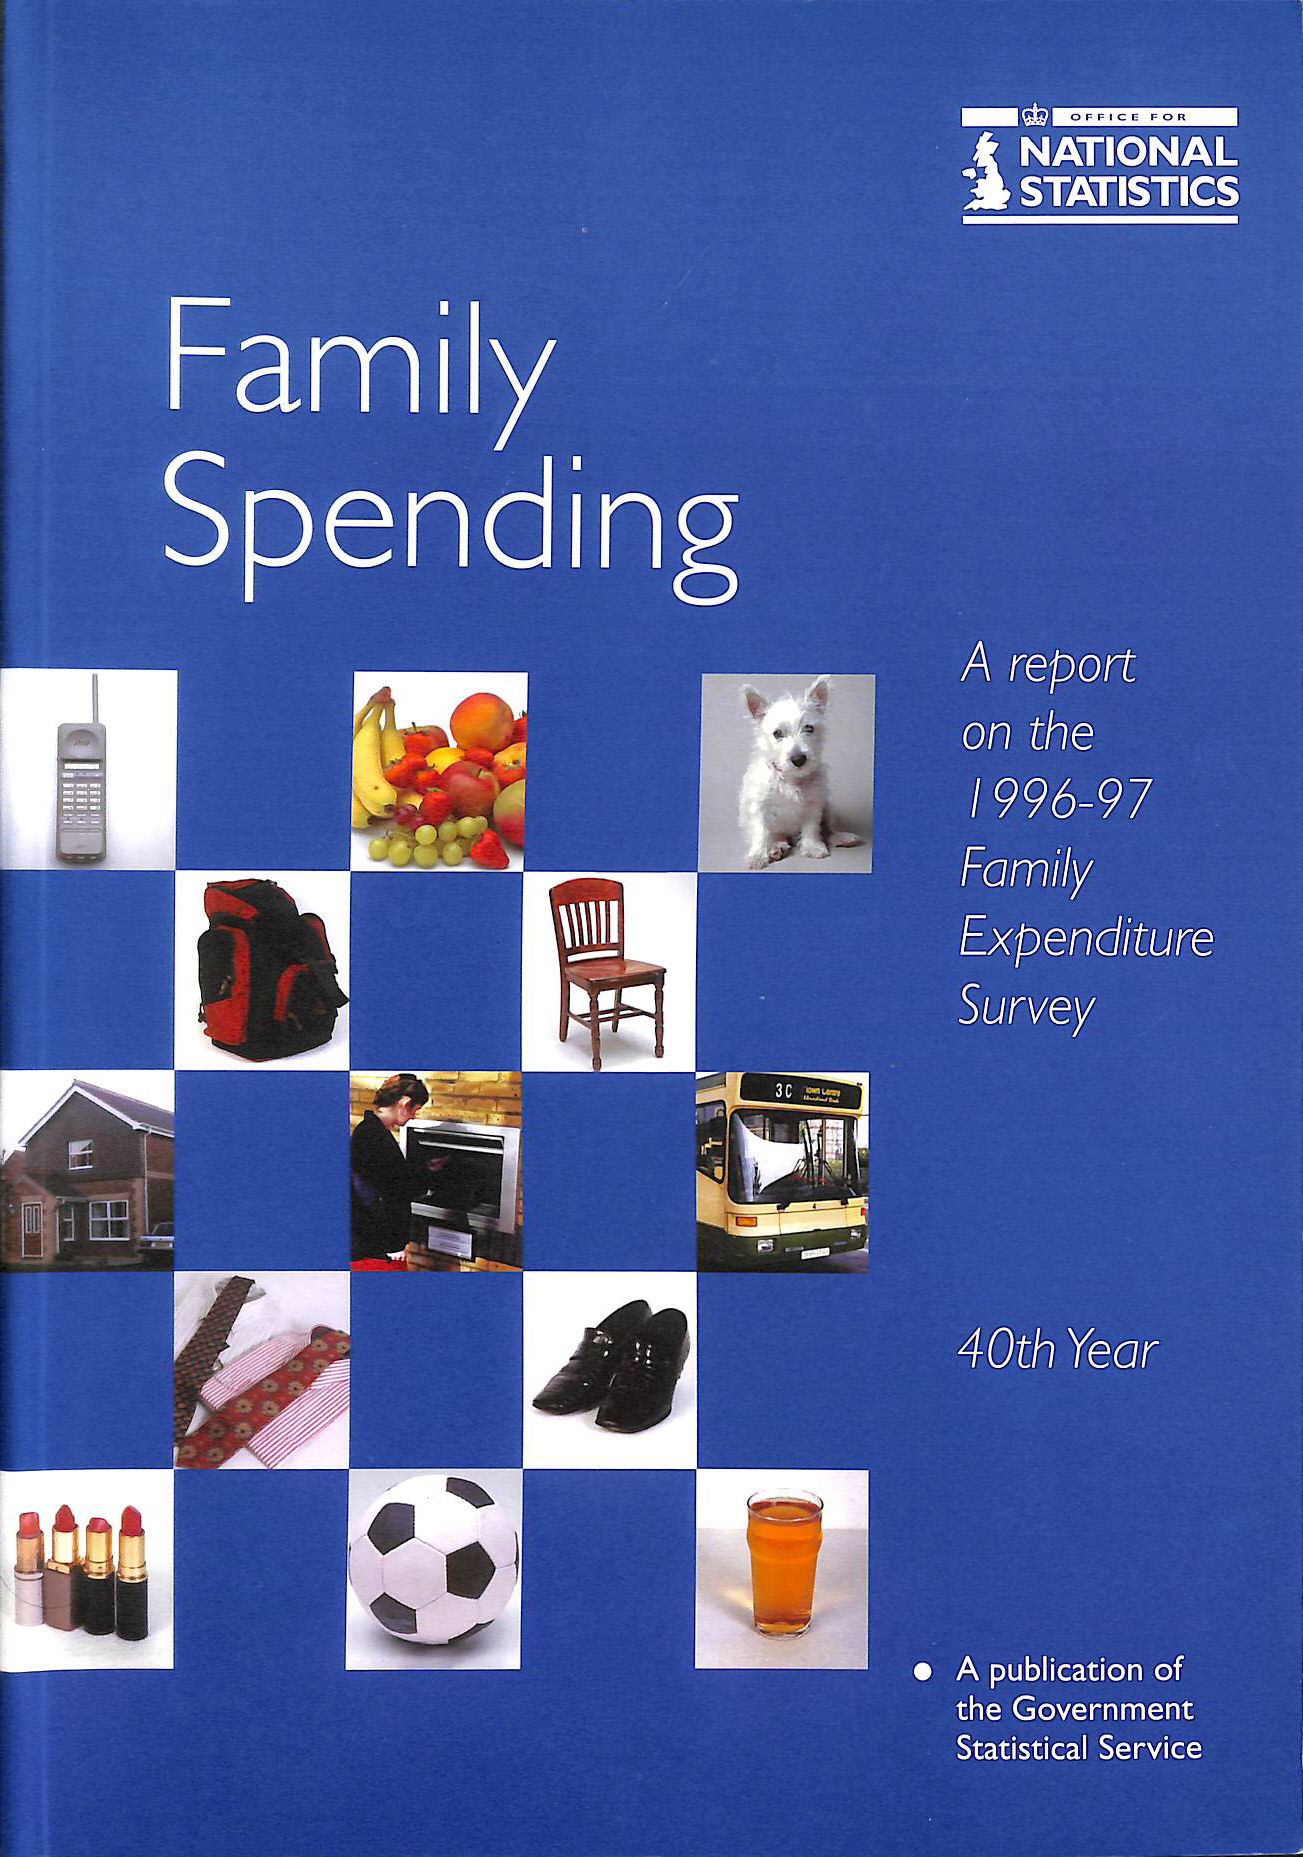 Image for Family Spending 1996-97: A Report on the Family Expenditure Survey